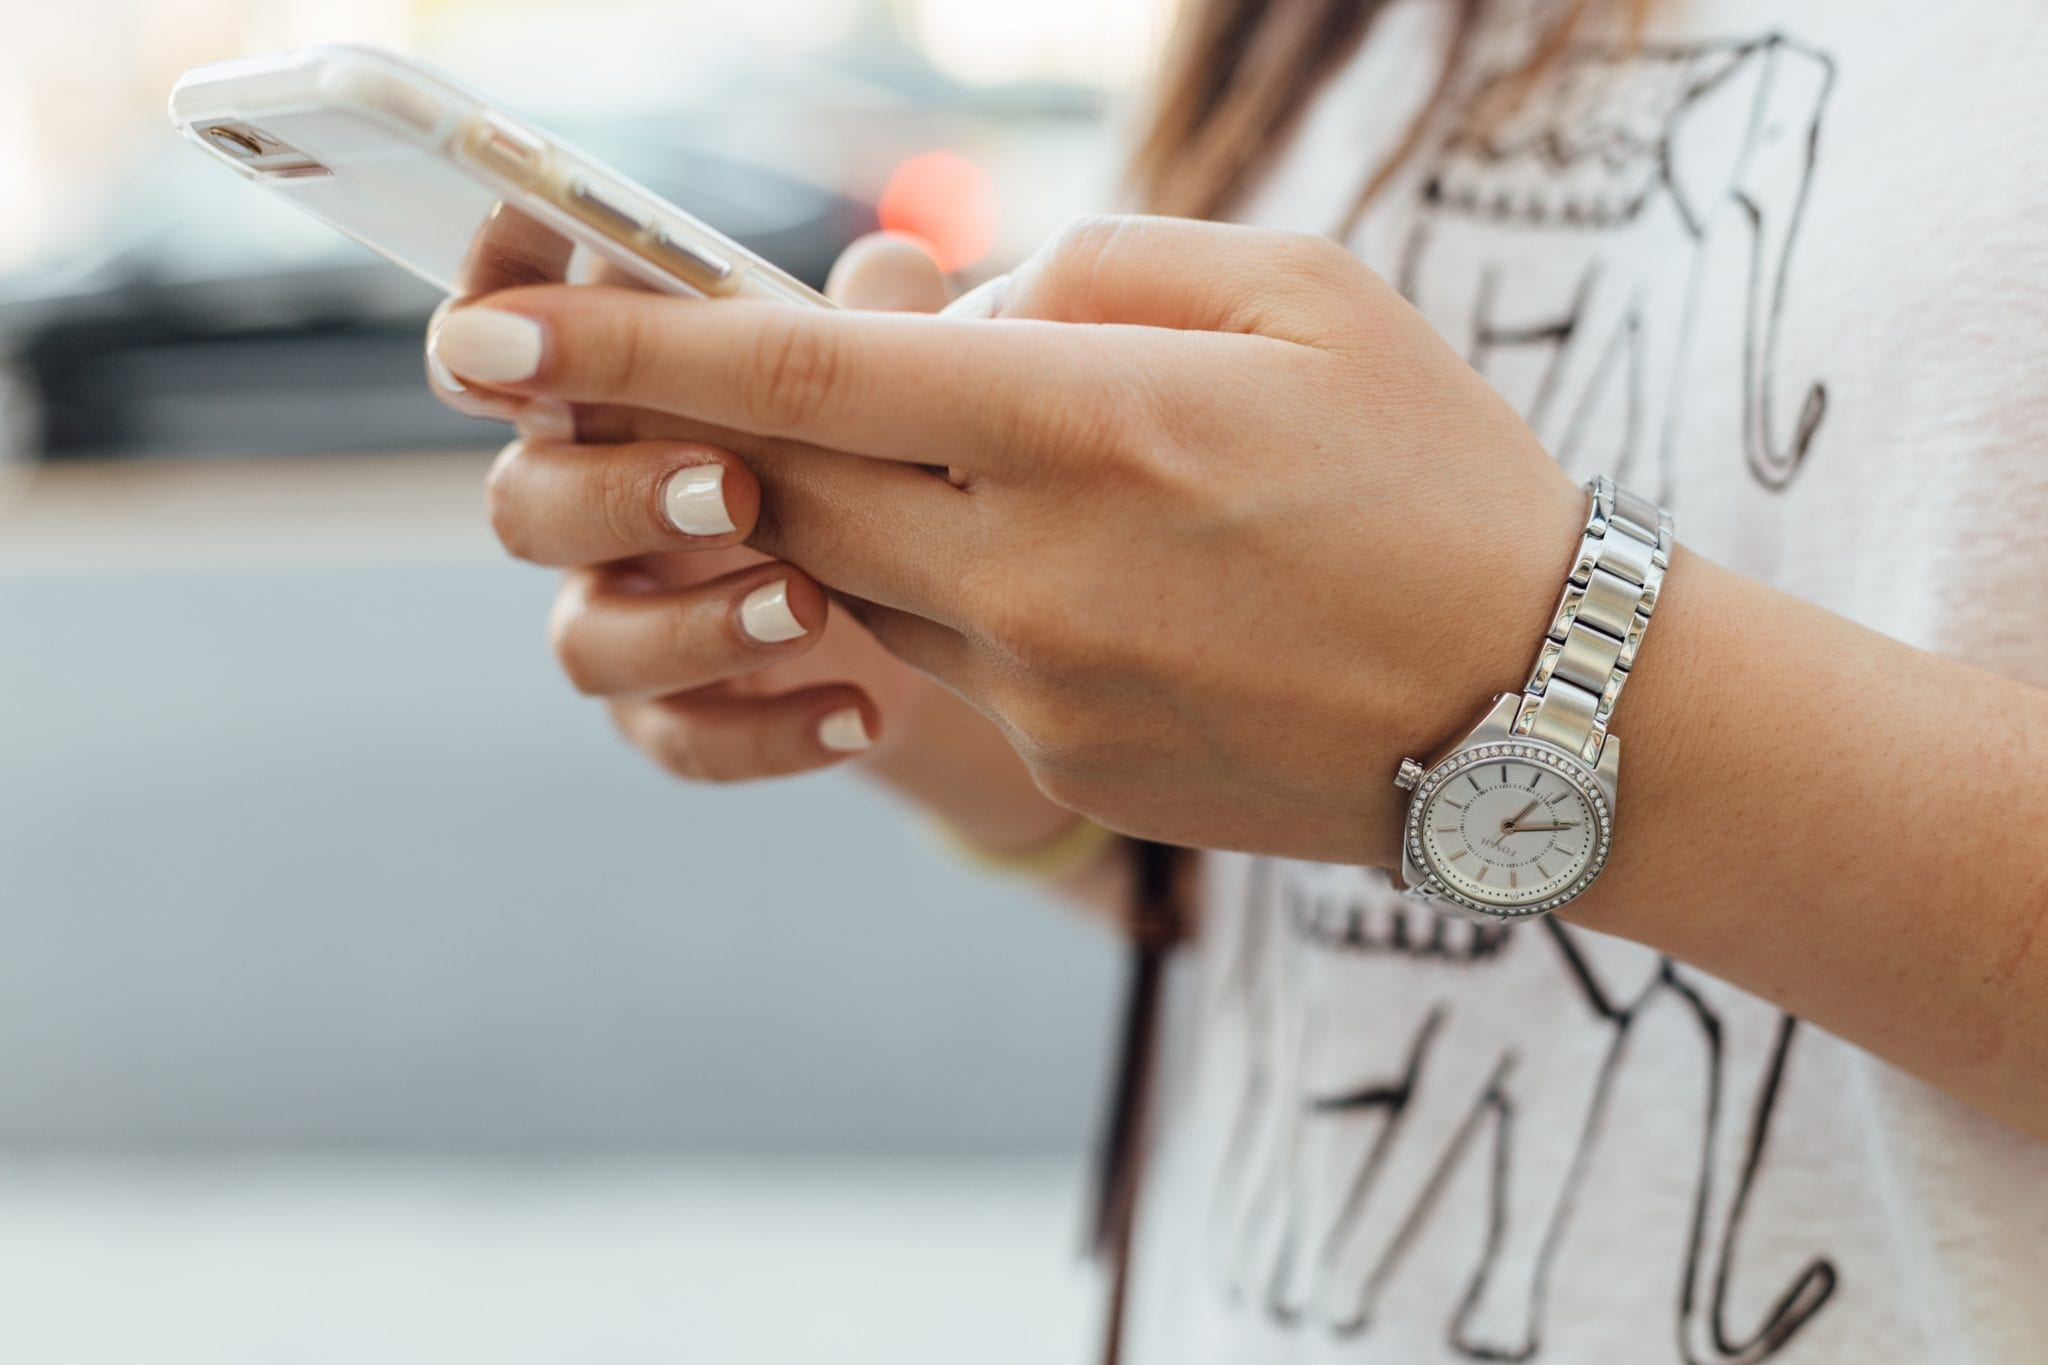 close up shot of hands holding phone